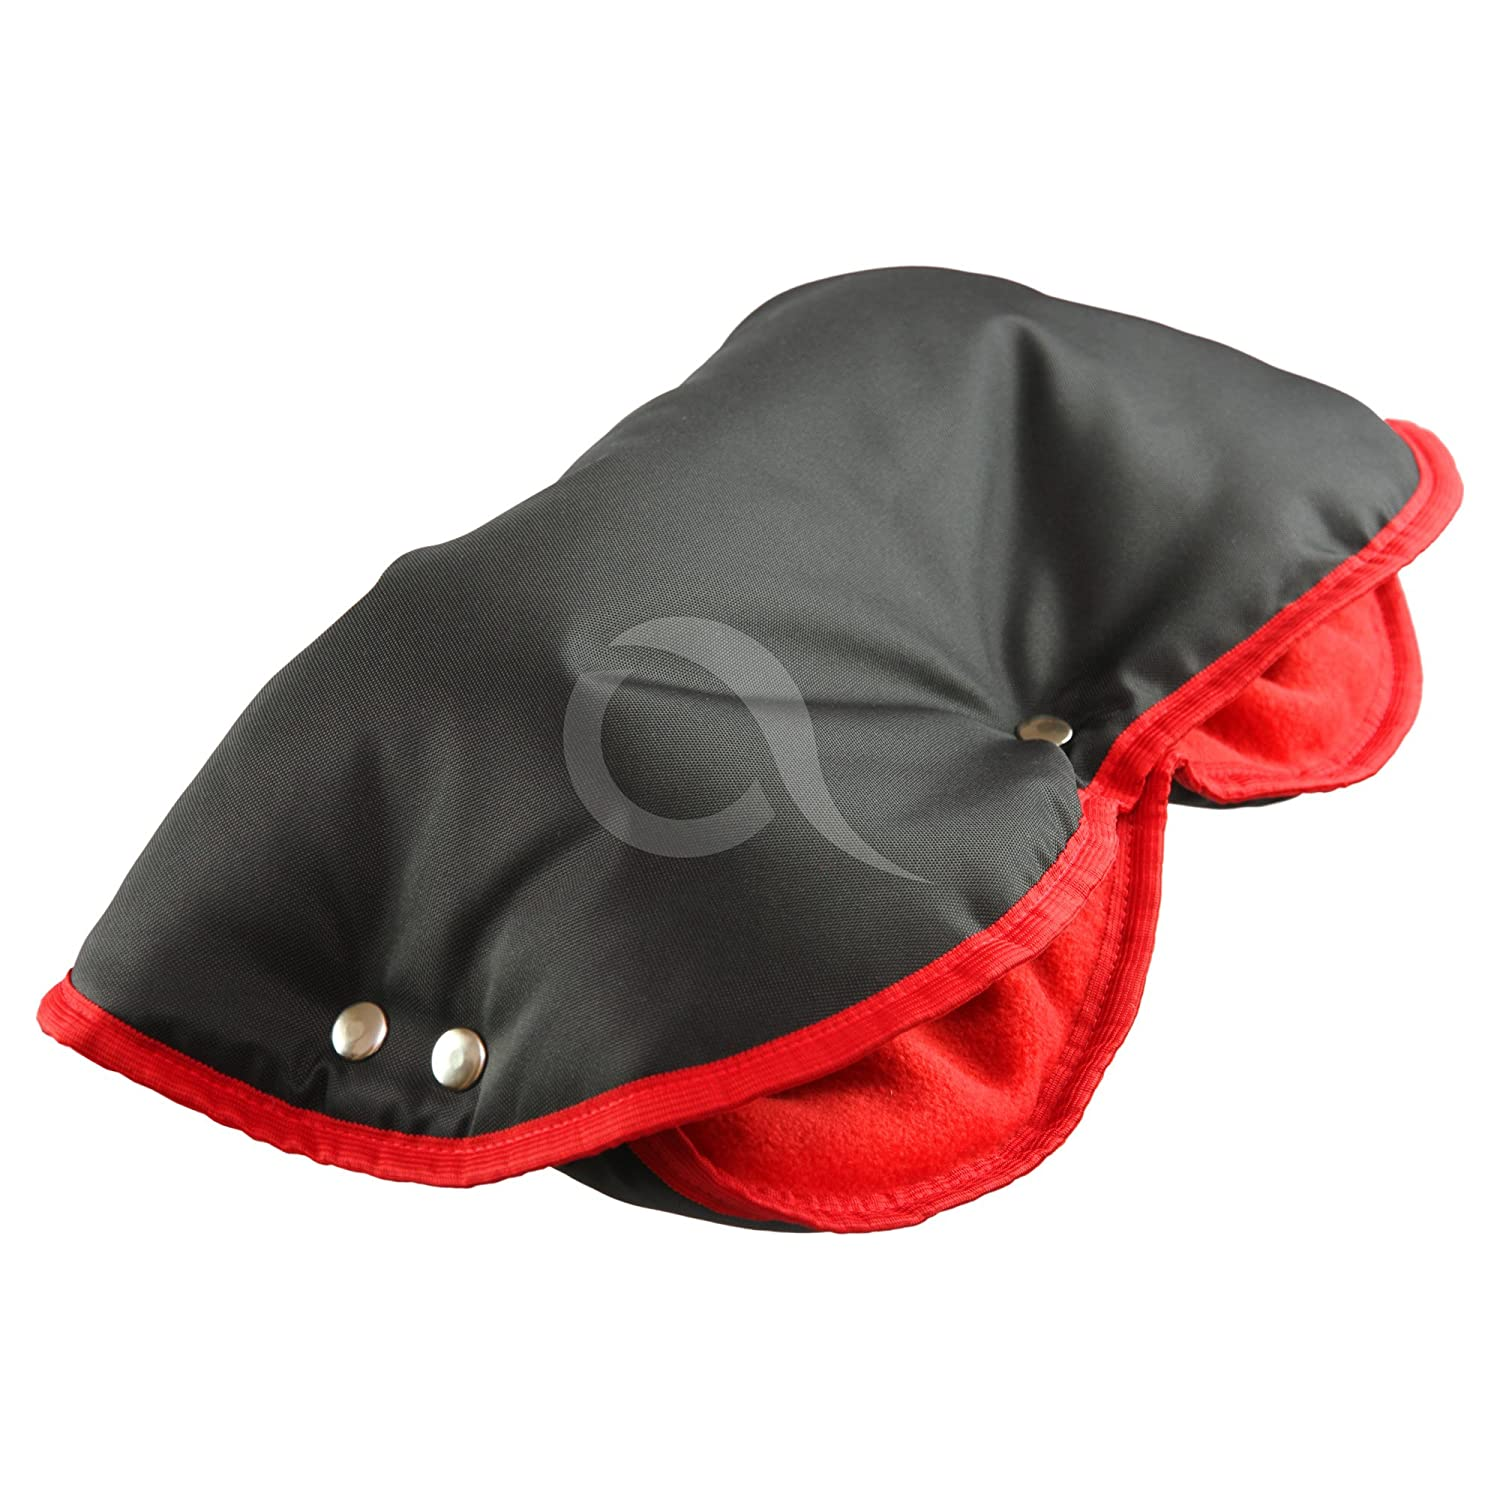 HAND WARMER MUFFS fits PRAM PUSHCHAIR BUGGY NEW WINTER handmuff gift! (black/red) olobaby